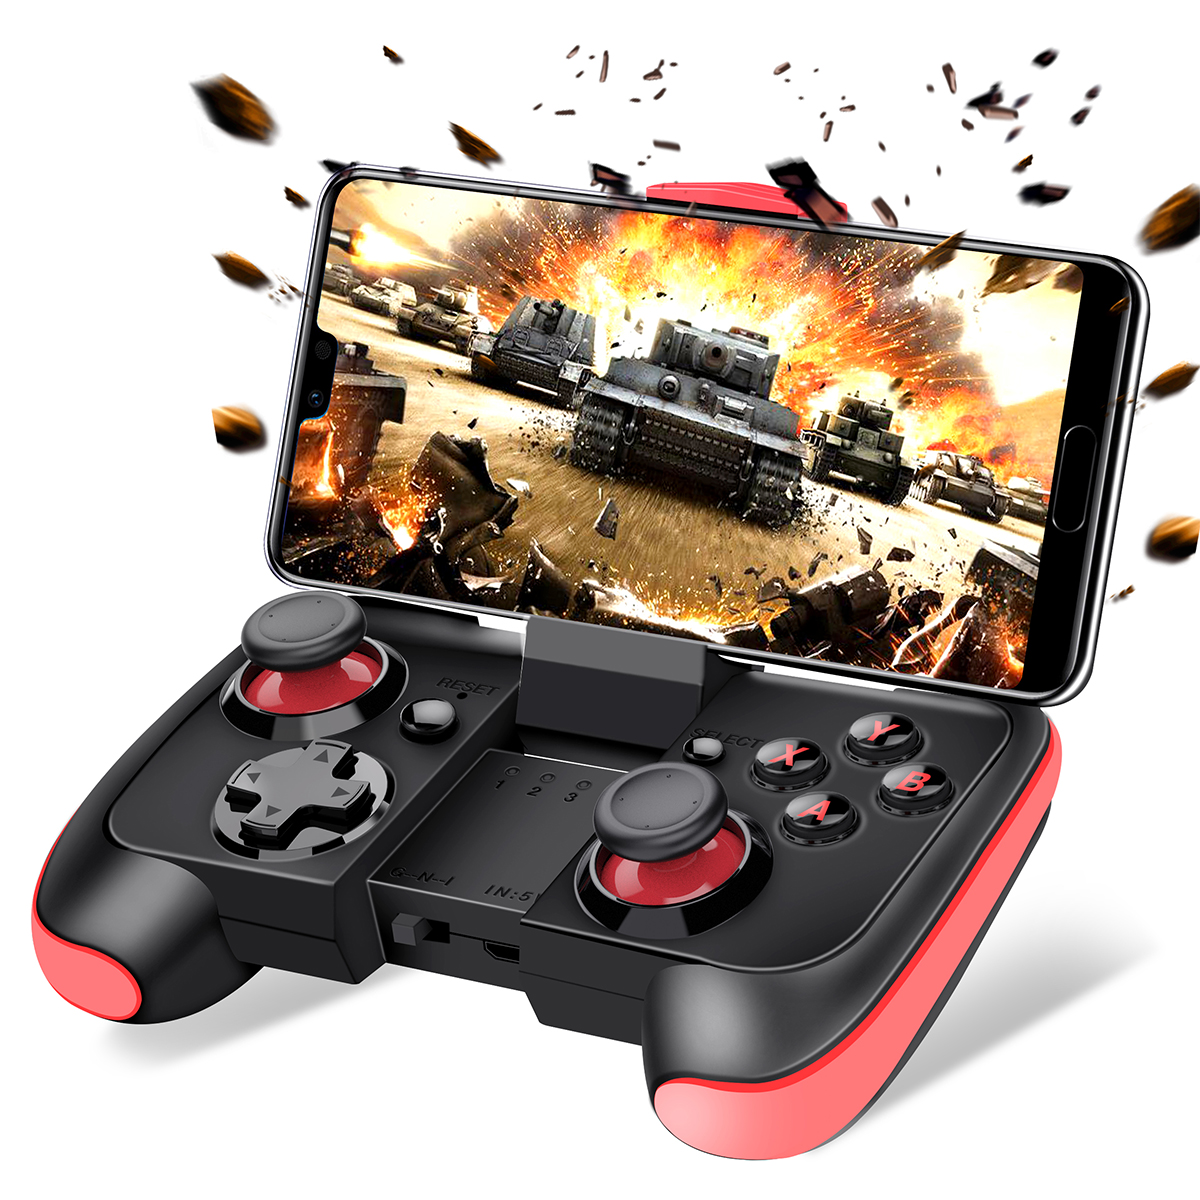 BEBONCOOL Wireless Game Controller For Android Phone/Tablet/Samsung Gear  VR/Game Boy Emulator(Red)